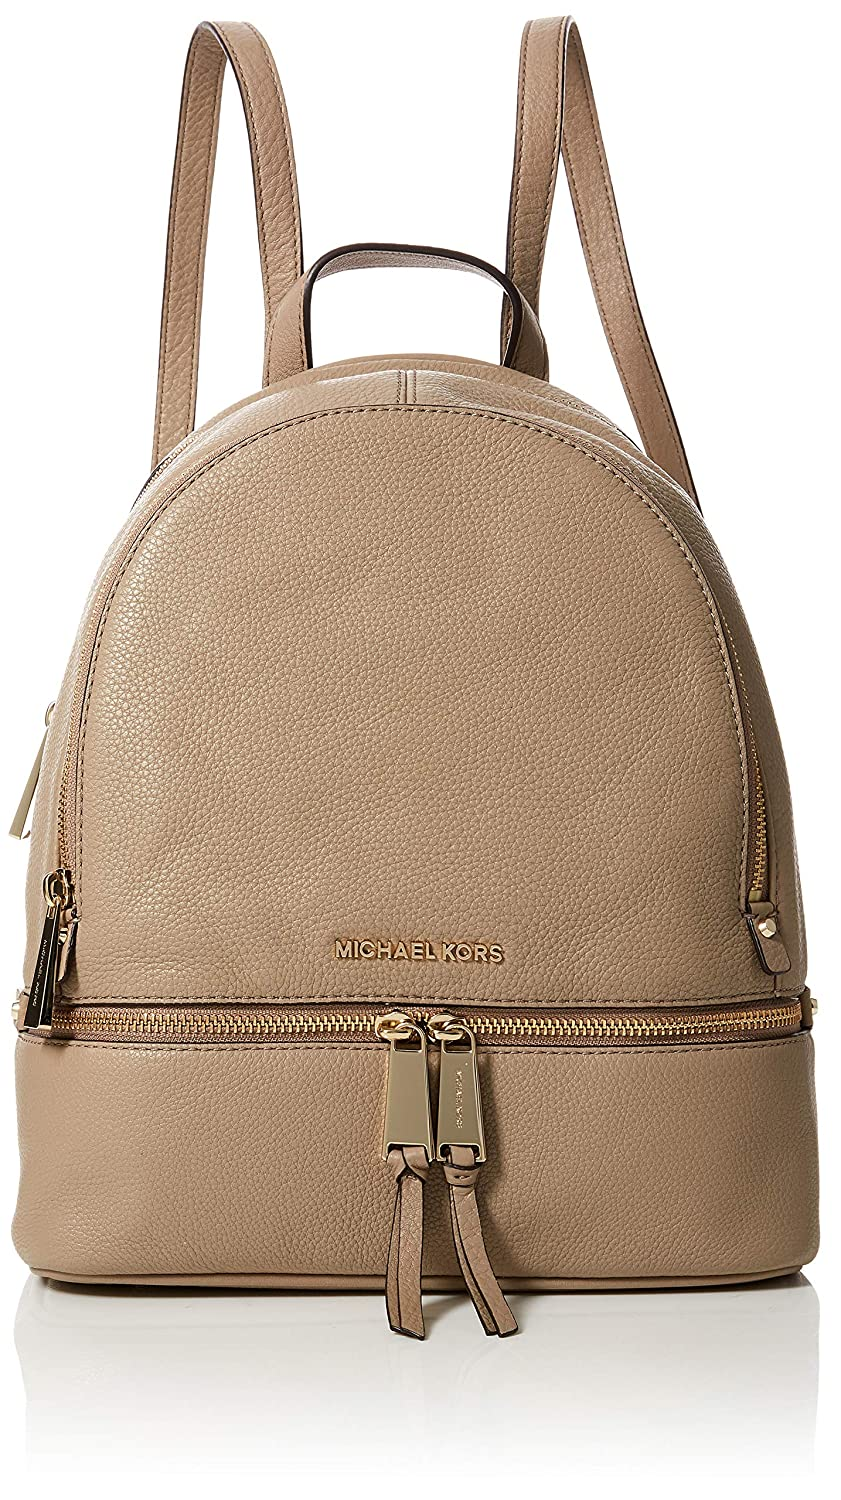 51f08a56b265ed Amazon.com: Michael Kors Womens Rhea Zip Backpack Handbag Beige (TRUFFLE):  Shoes